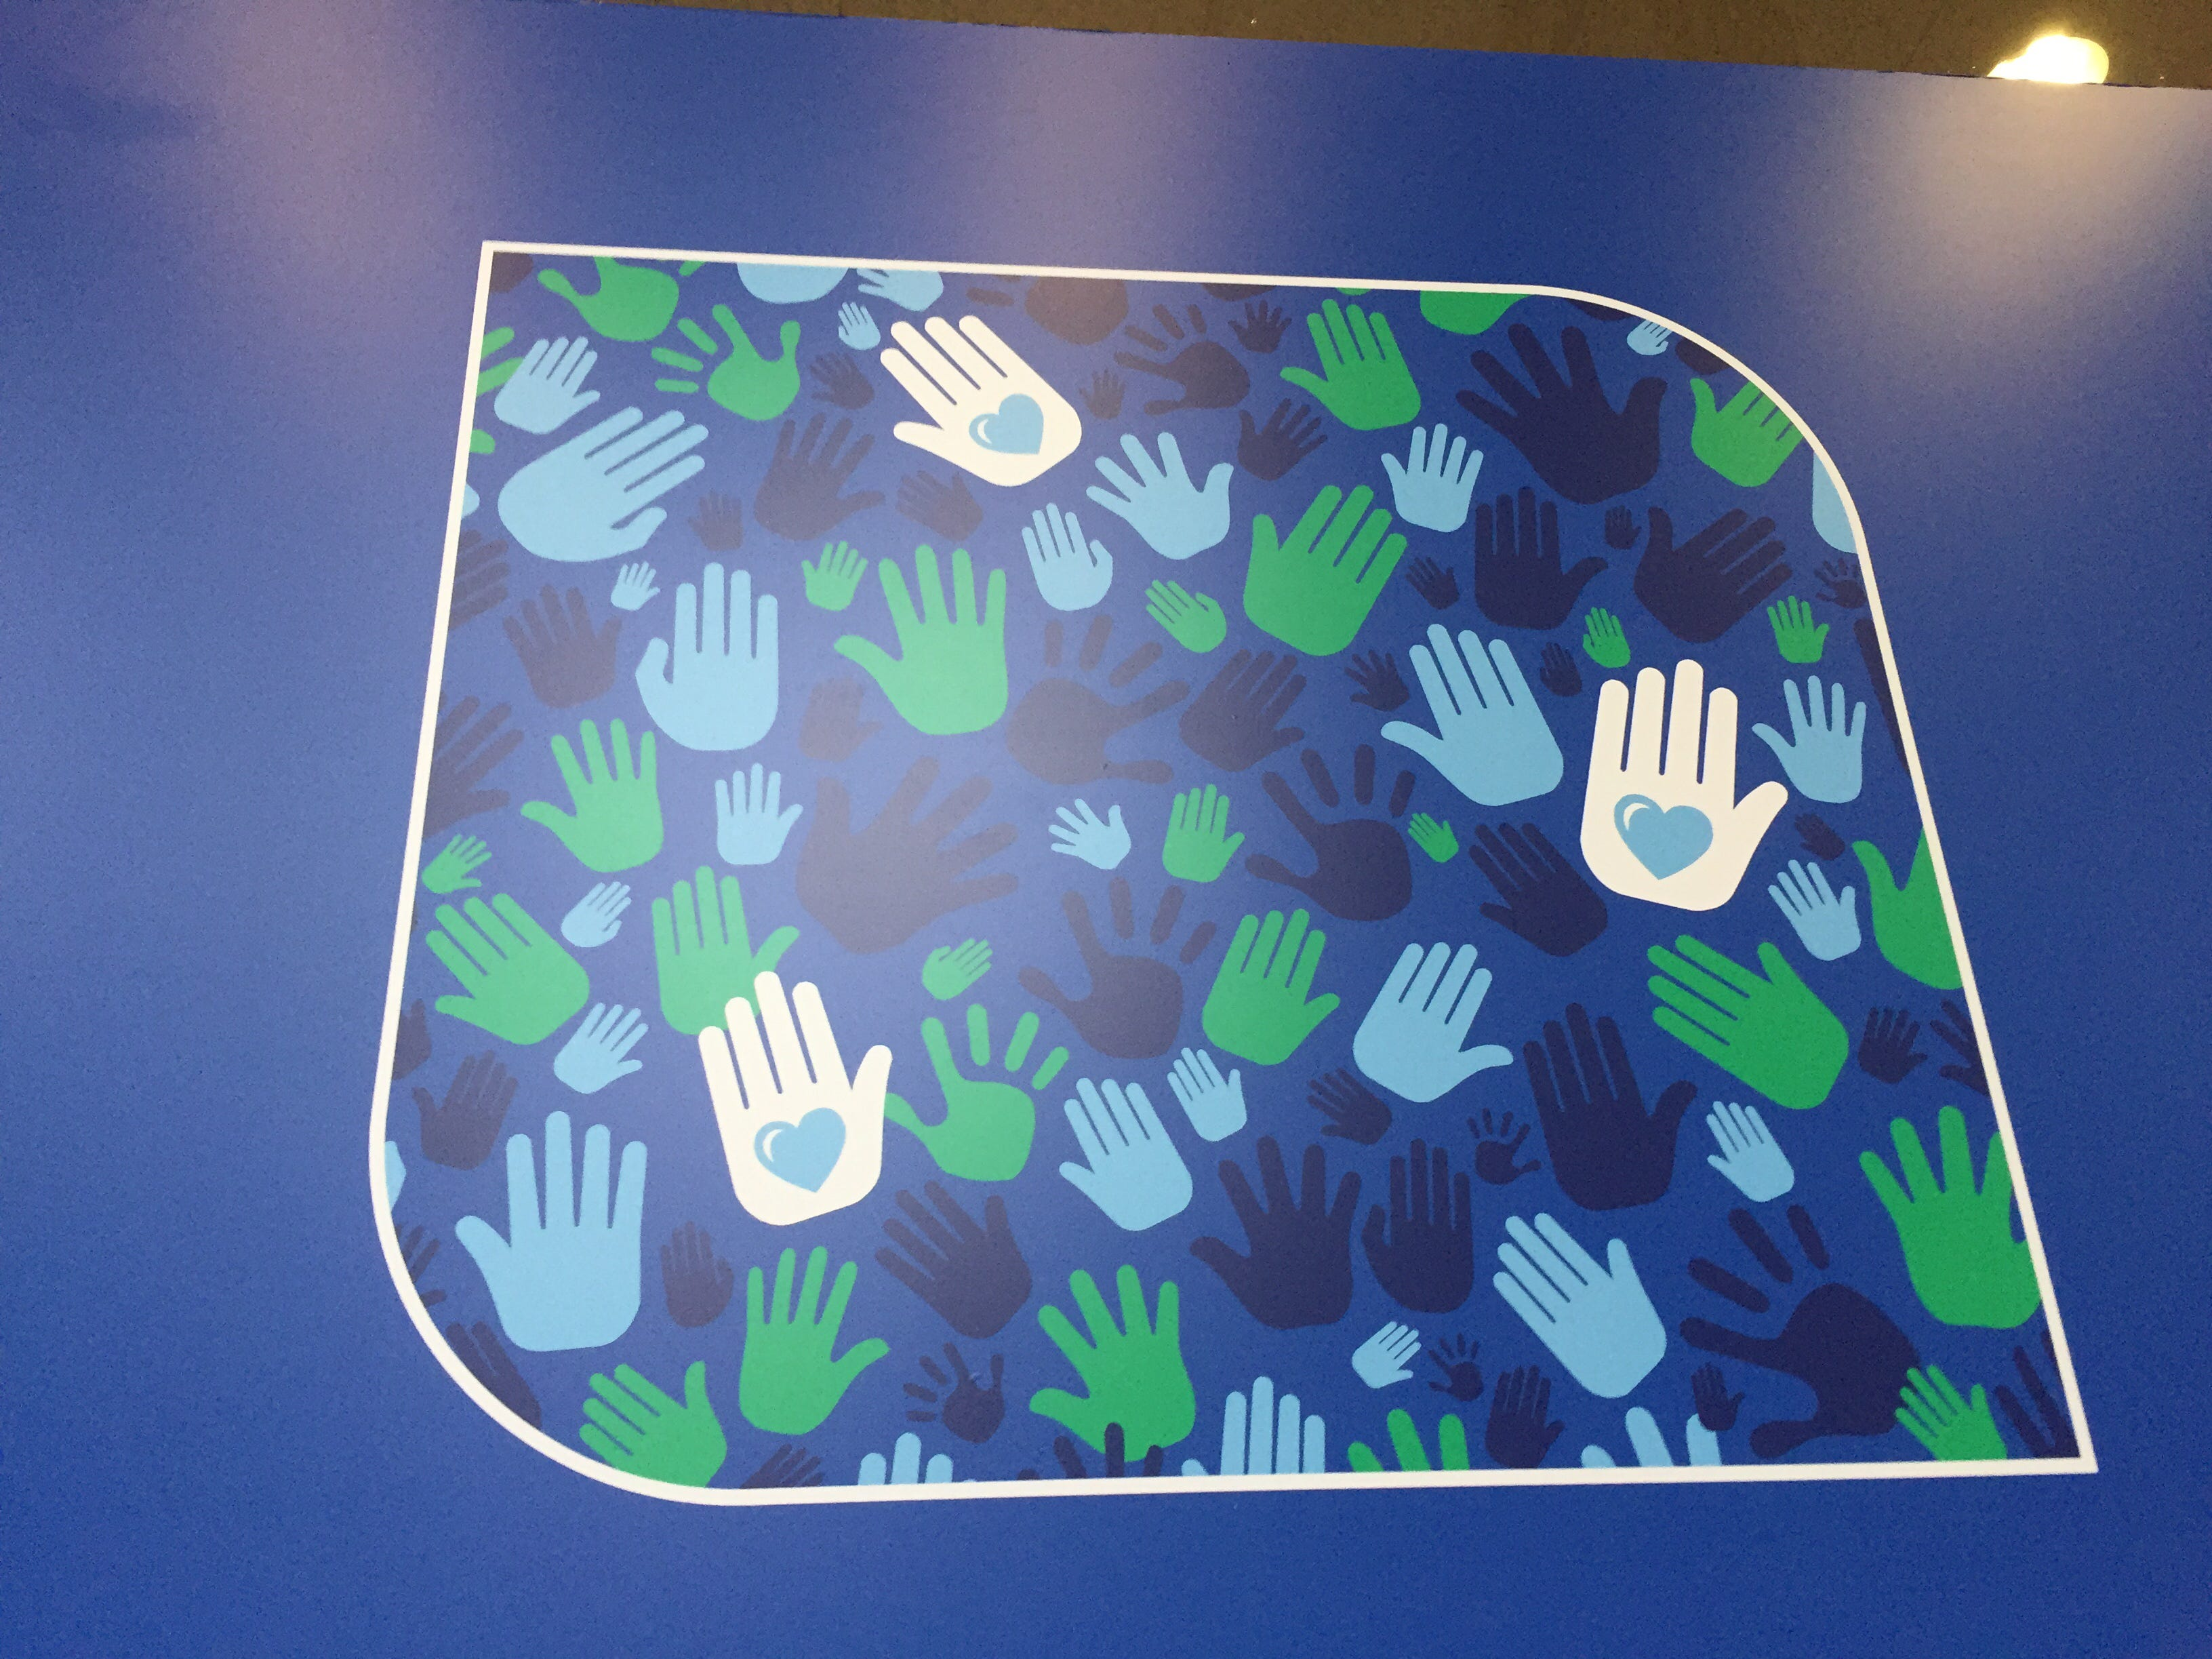 Hand prints are featured heavily at the Fifth Third Center lobby reopening on Monday.